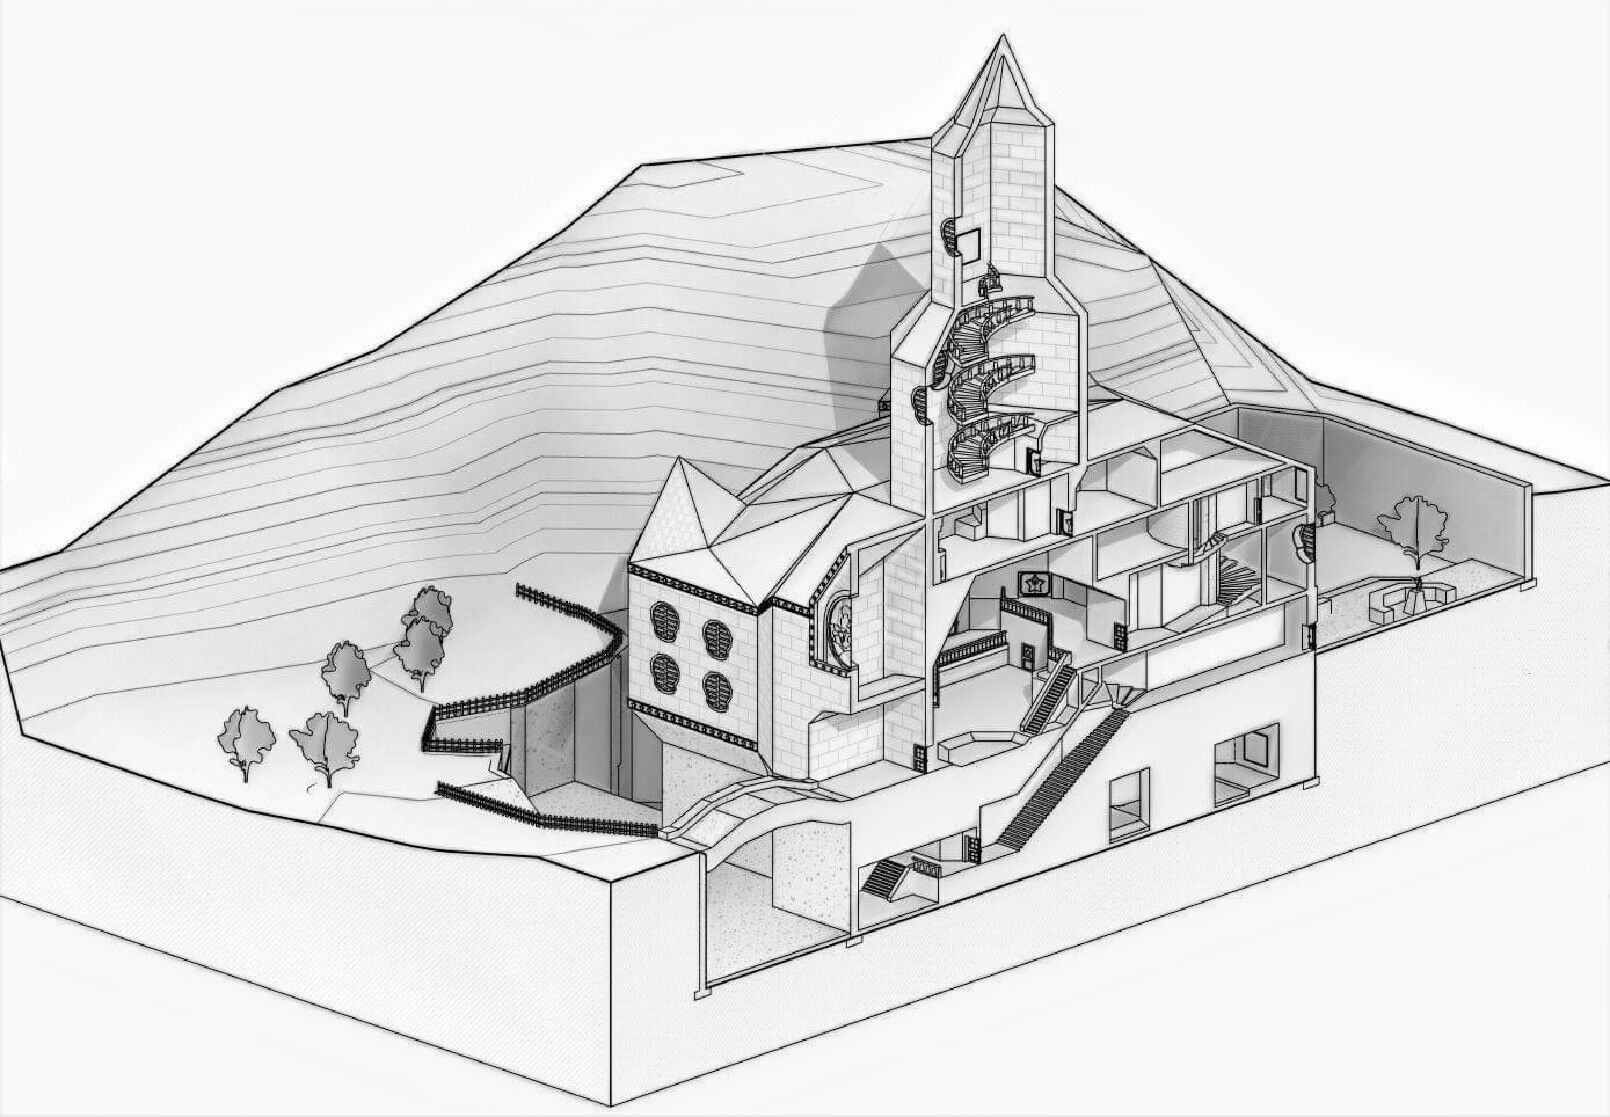 An accurate to scale drawing of Peach's castle, by Slaughtahouse.